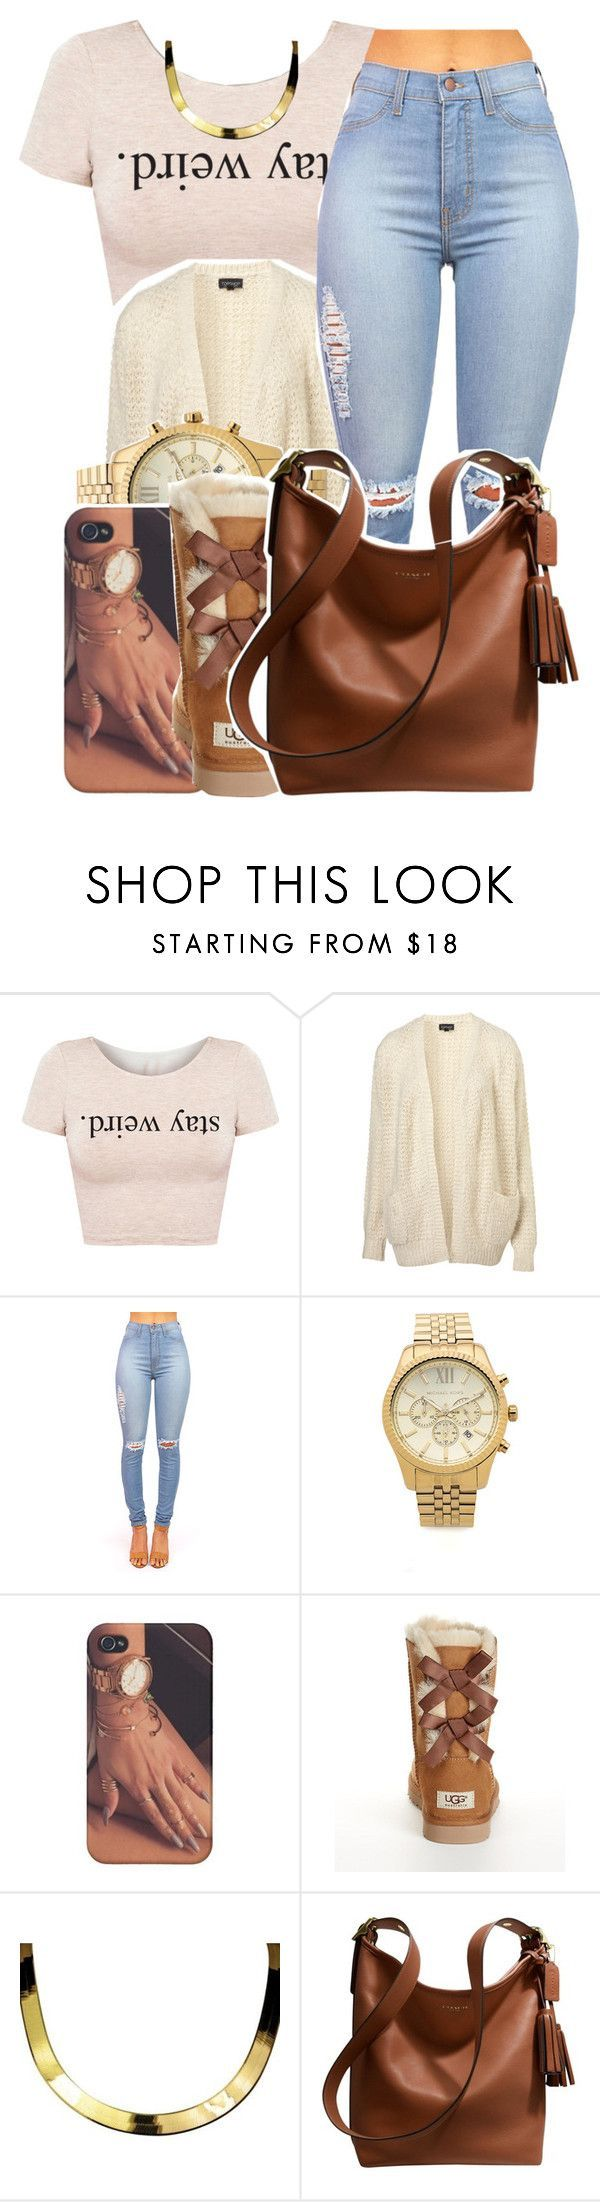 """10/26/15"" by xtaymaxlovesxmisfitx ❤ liked on Polyvore featuring Topshop, Michael Kors, UGG Australia, ASAP and Coach"